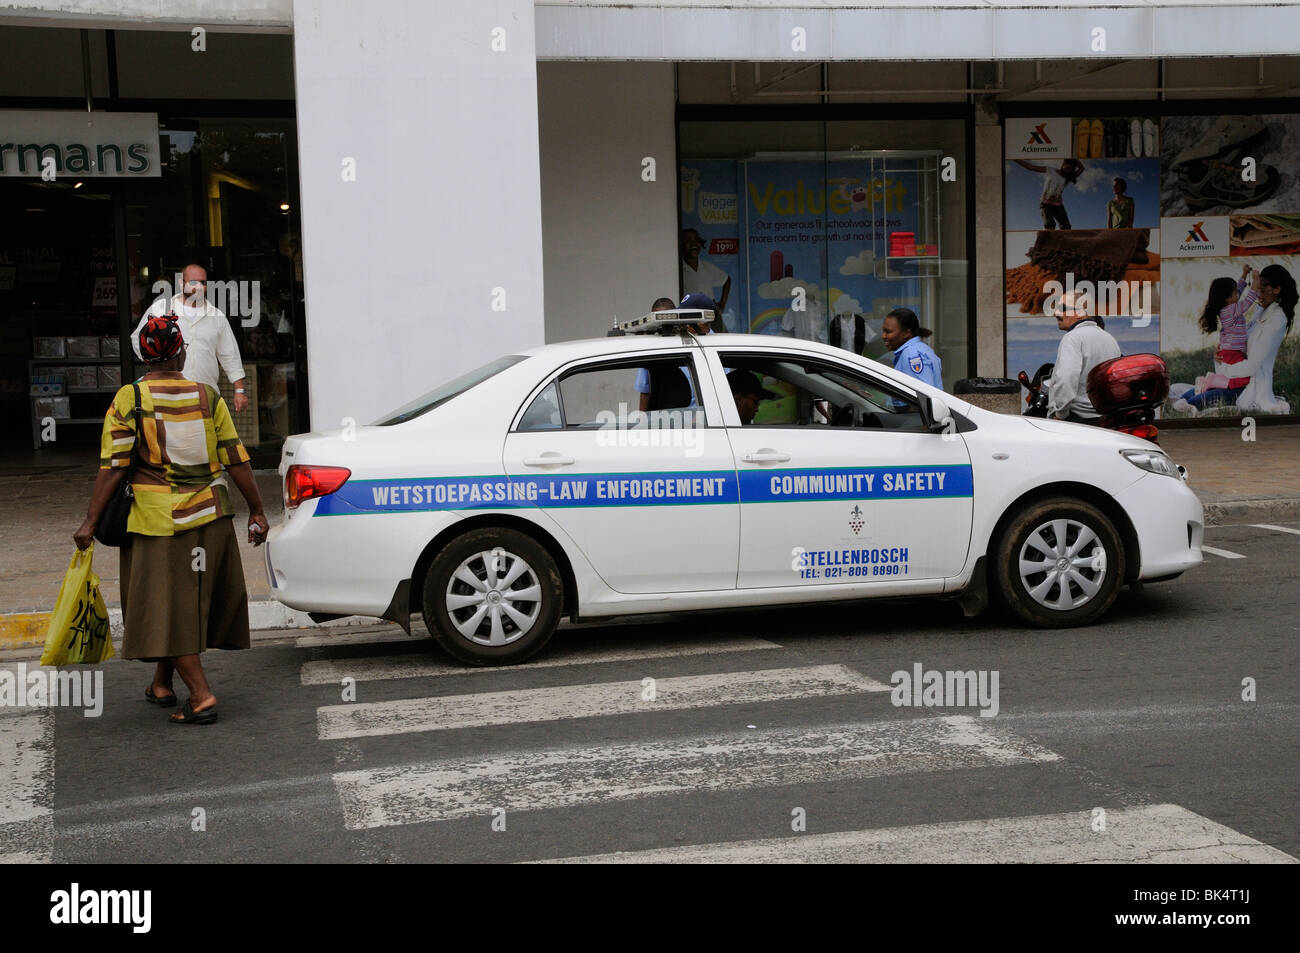 law enforcement police car parked on a pedestrian crossing stock